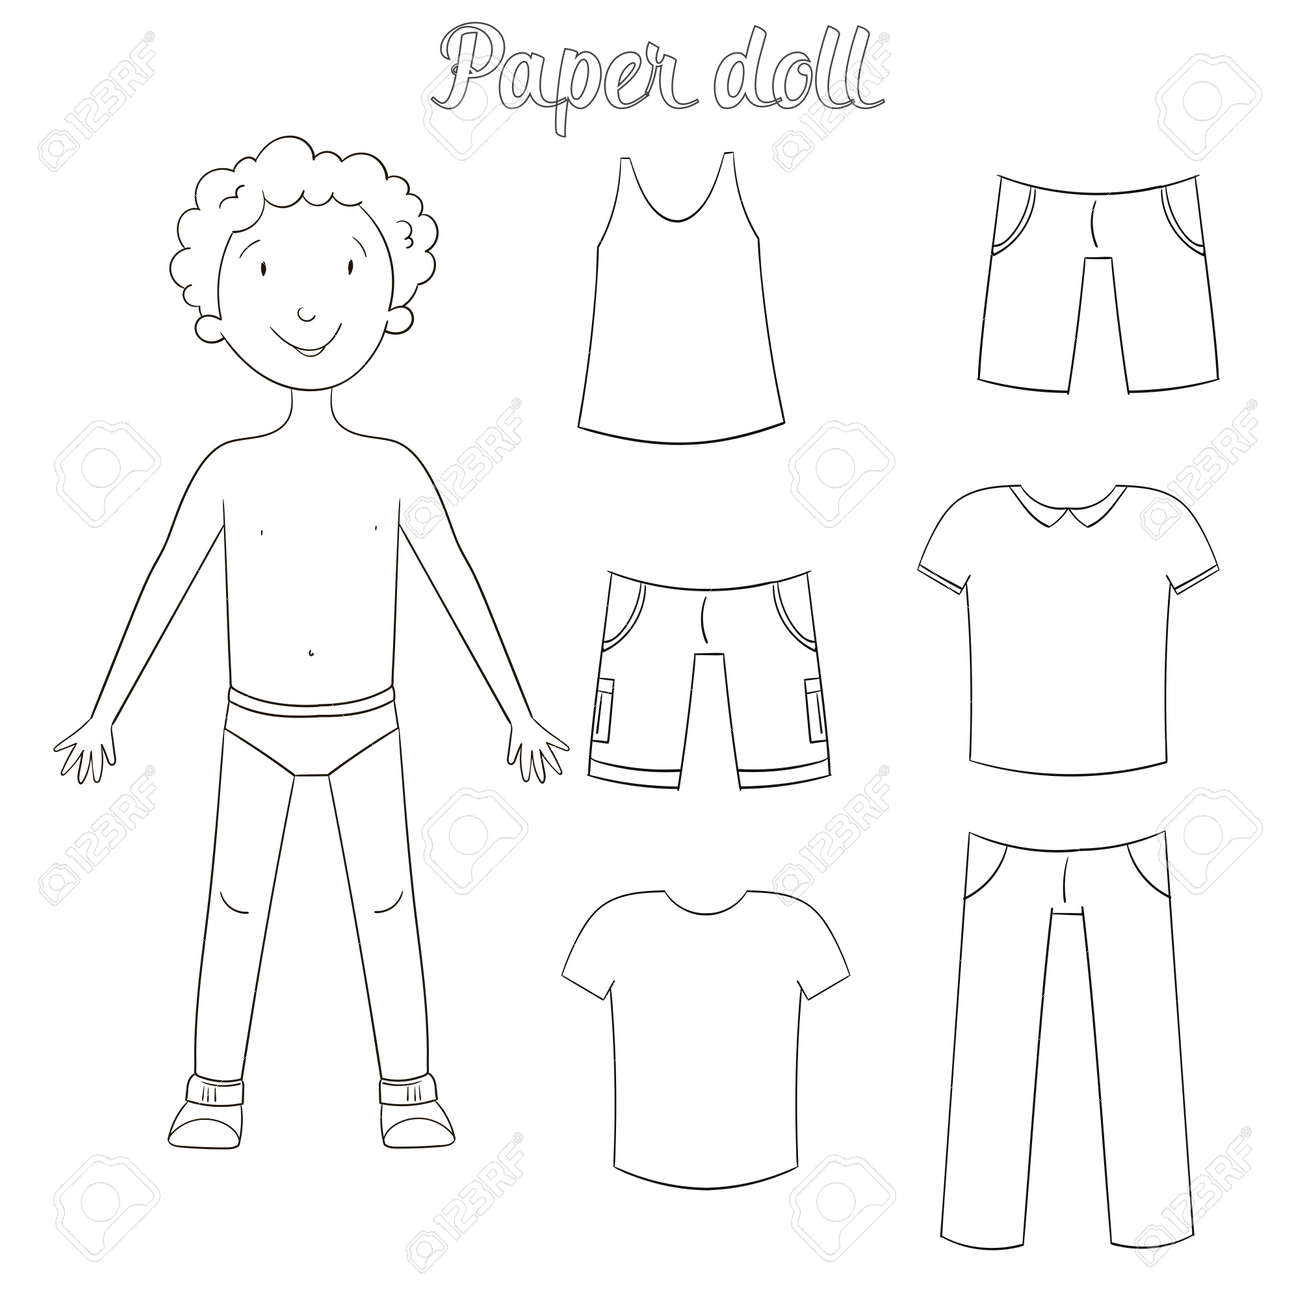 paper doll boy and clothes coloring book cartoon doodle hand drawn vector illustration stock vector - Coloring Book Paper Stock